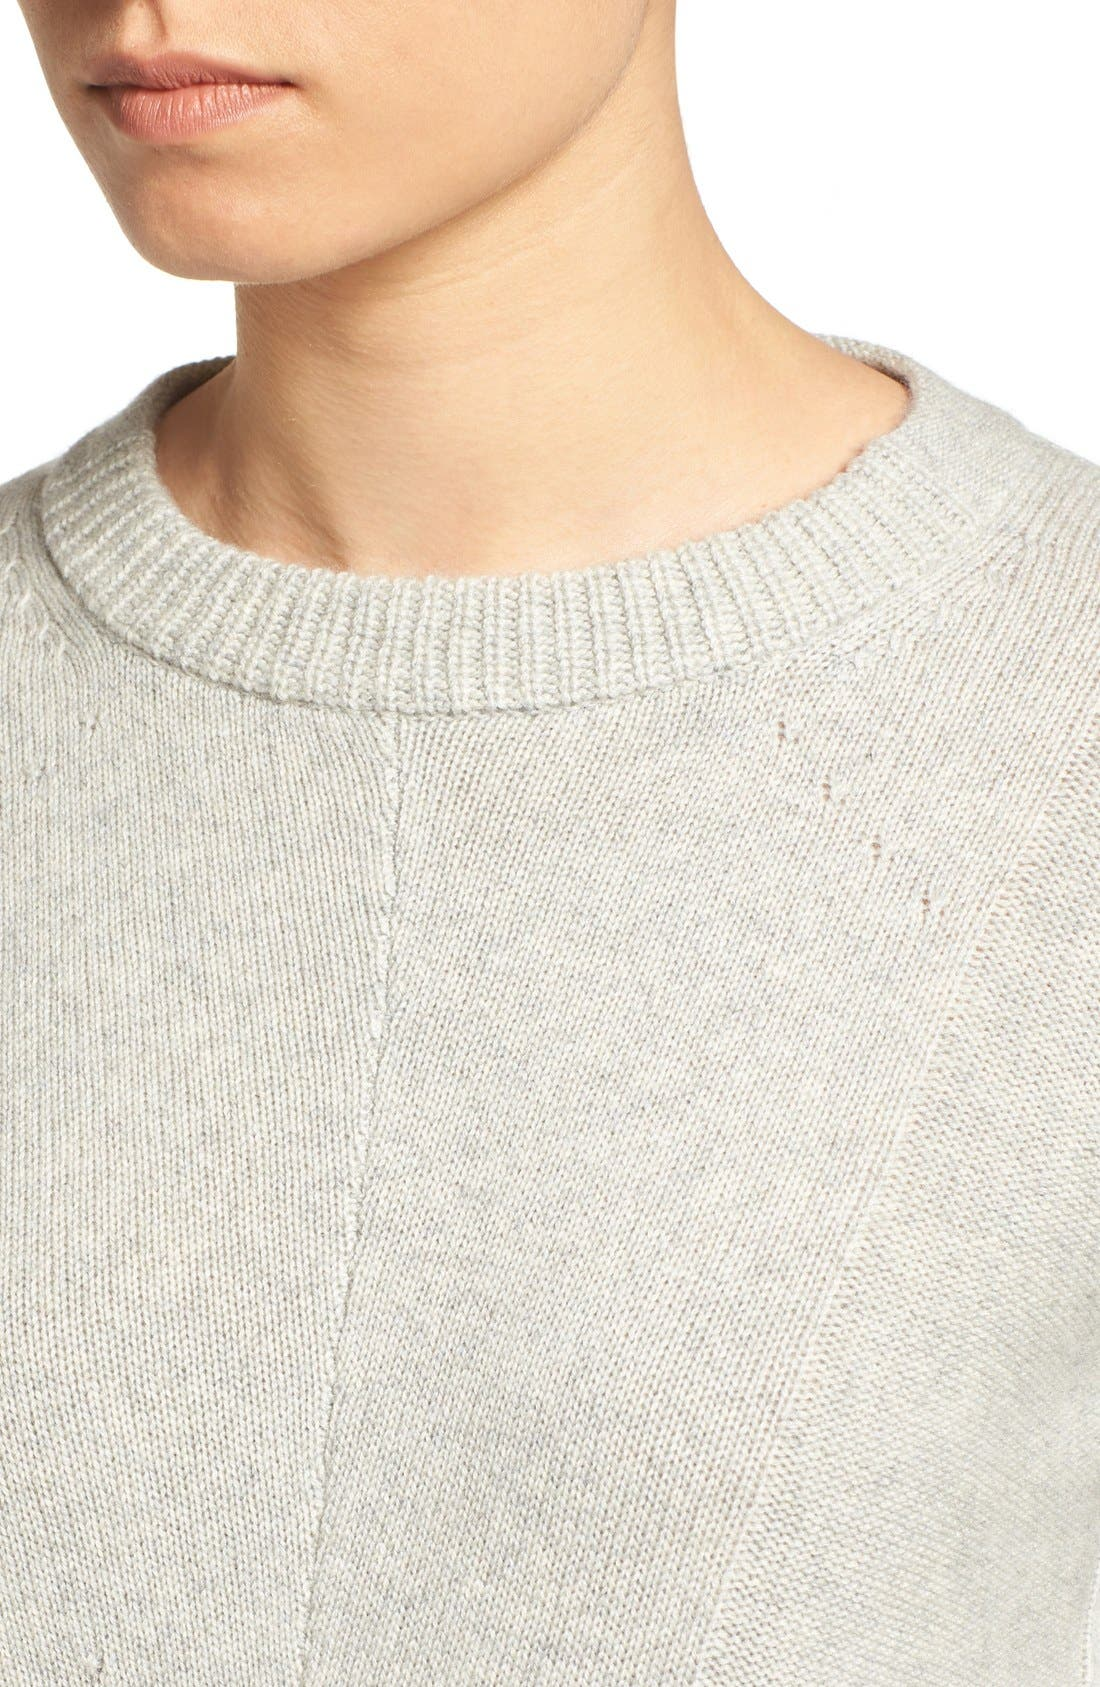 Joanna Wool & Cashmere Sweater,                             Alternate thumbnail 4, color,